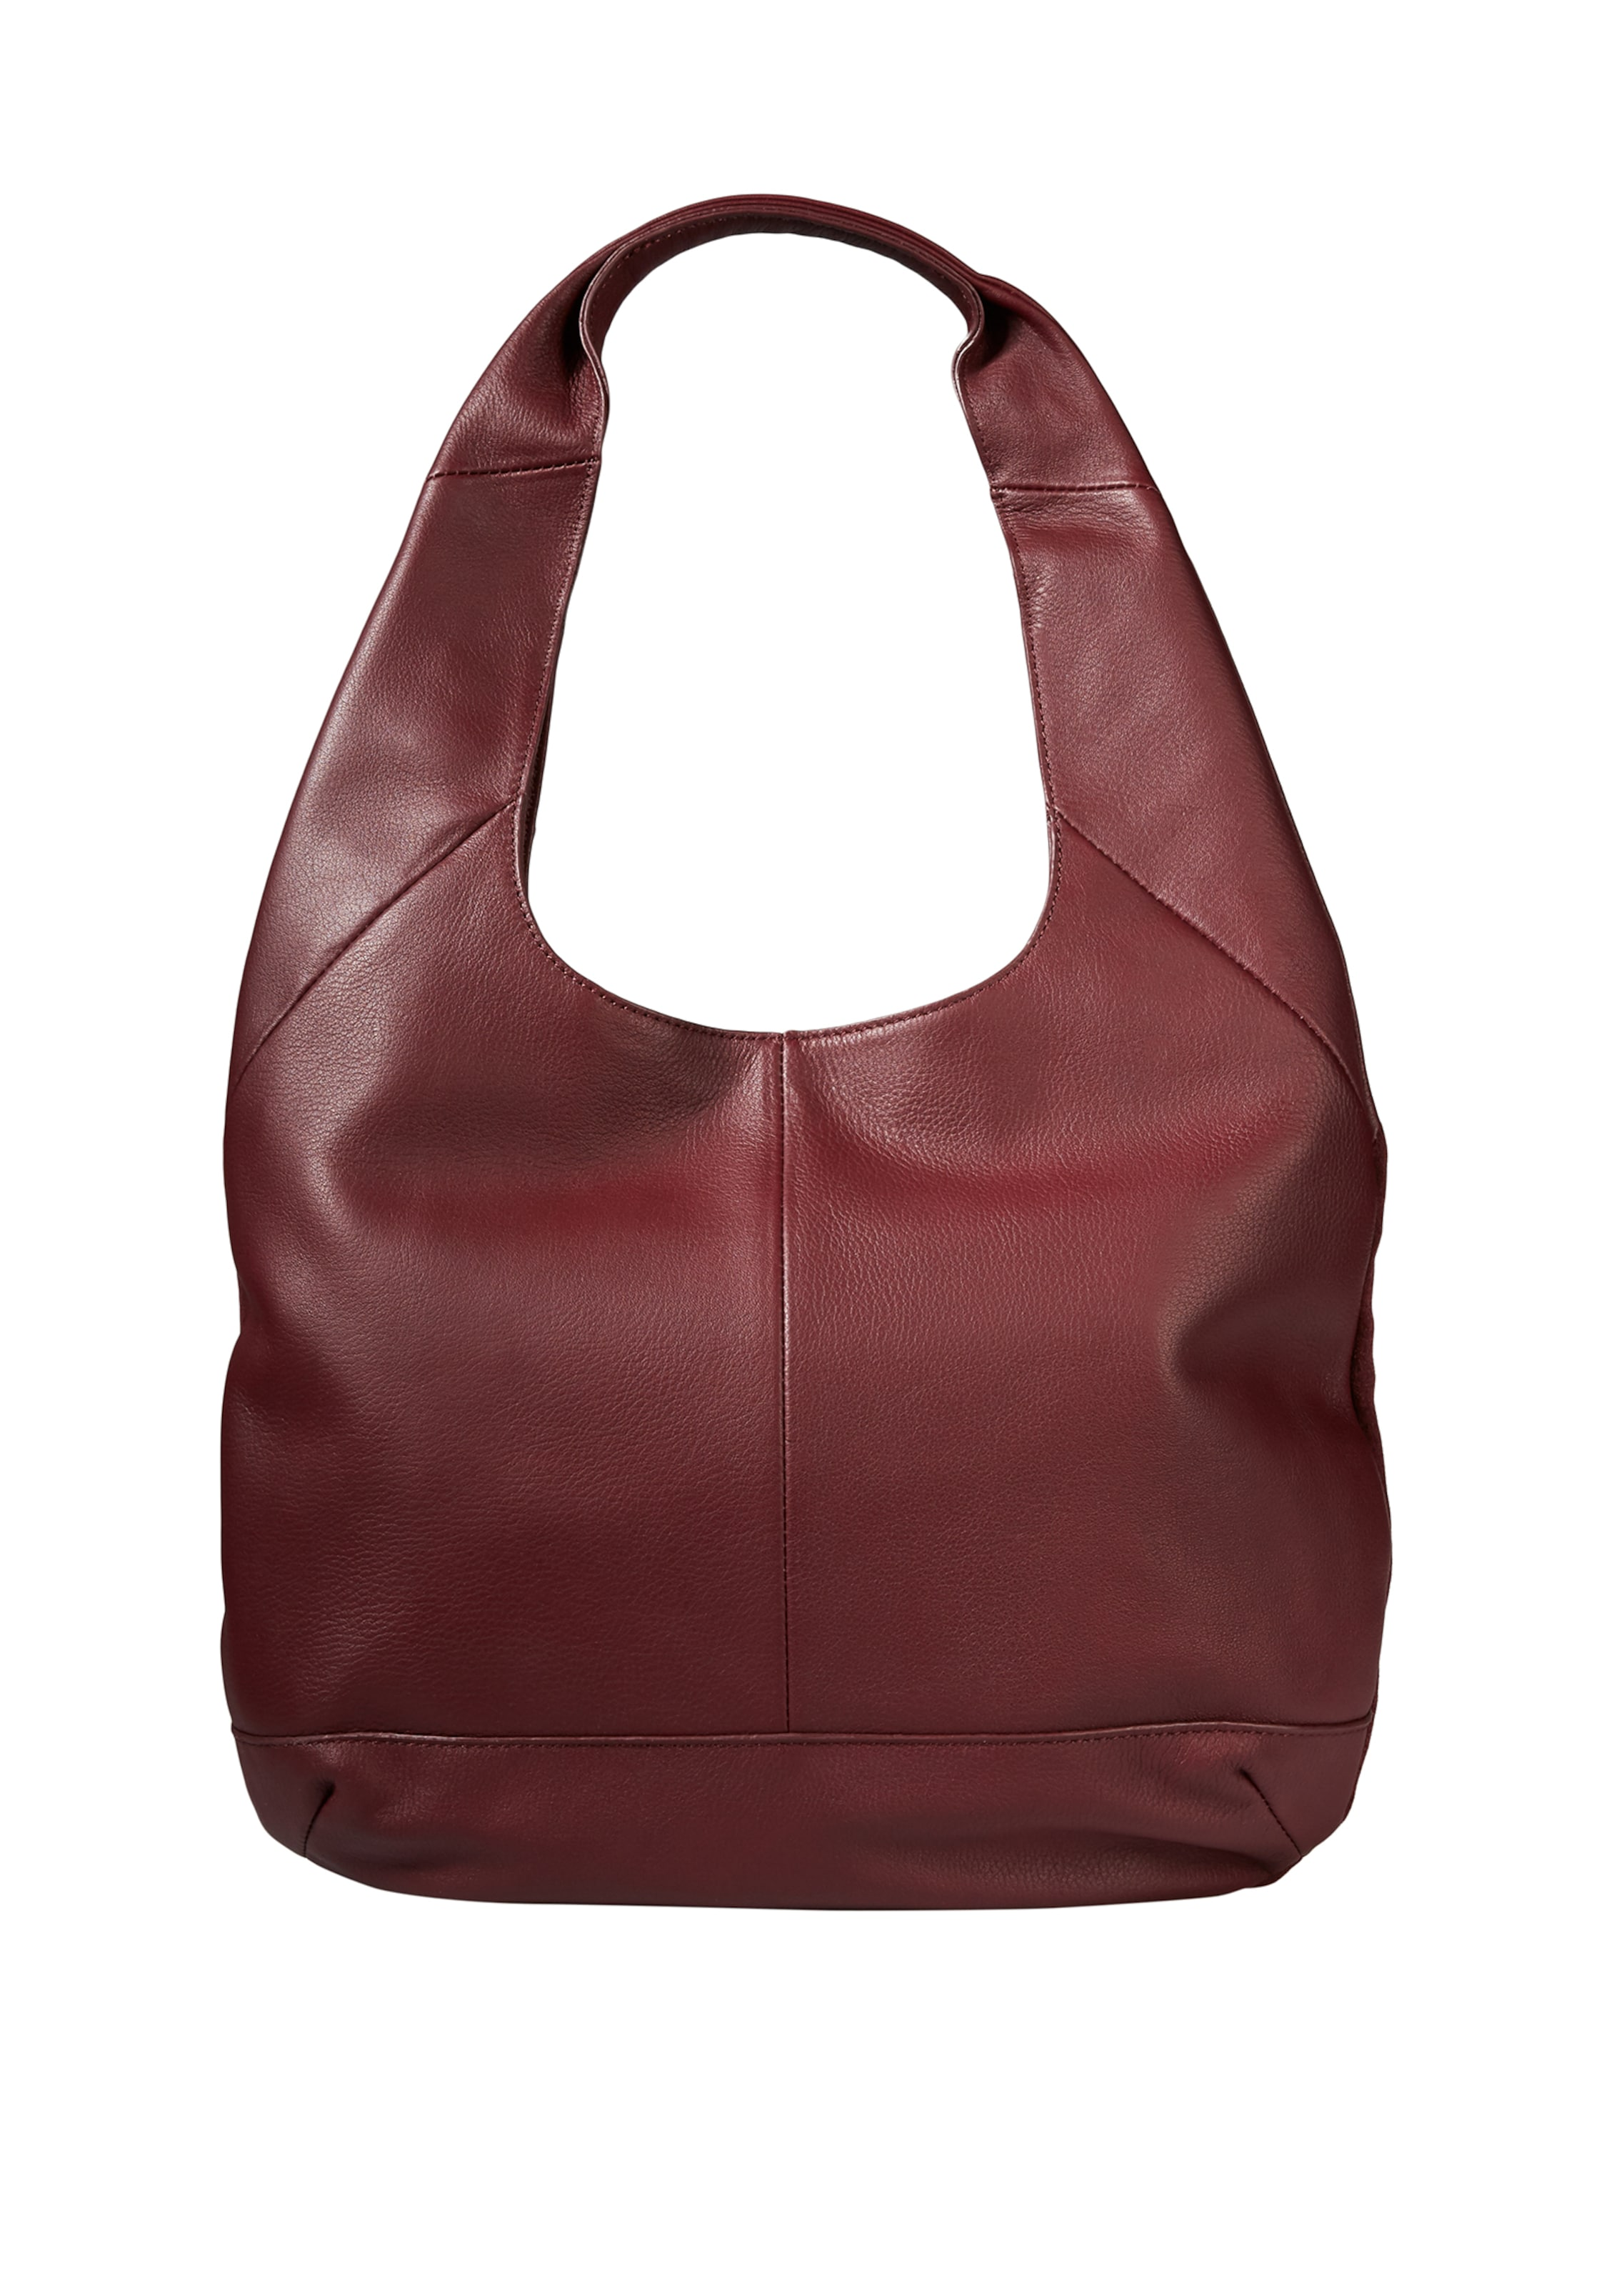 Bag In Hobo Marc O'polo HimbeerRubinrot F1KJcuTl3